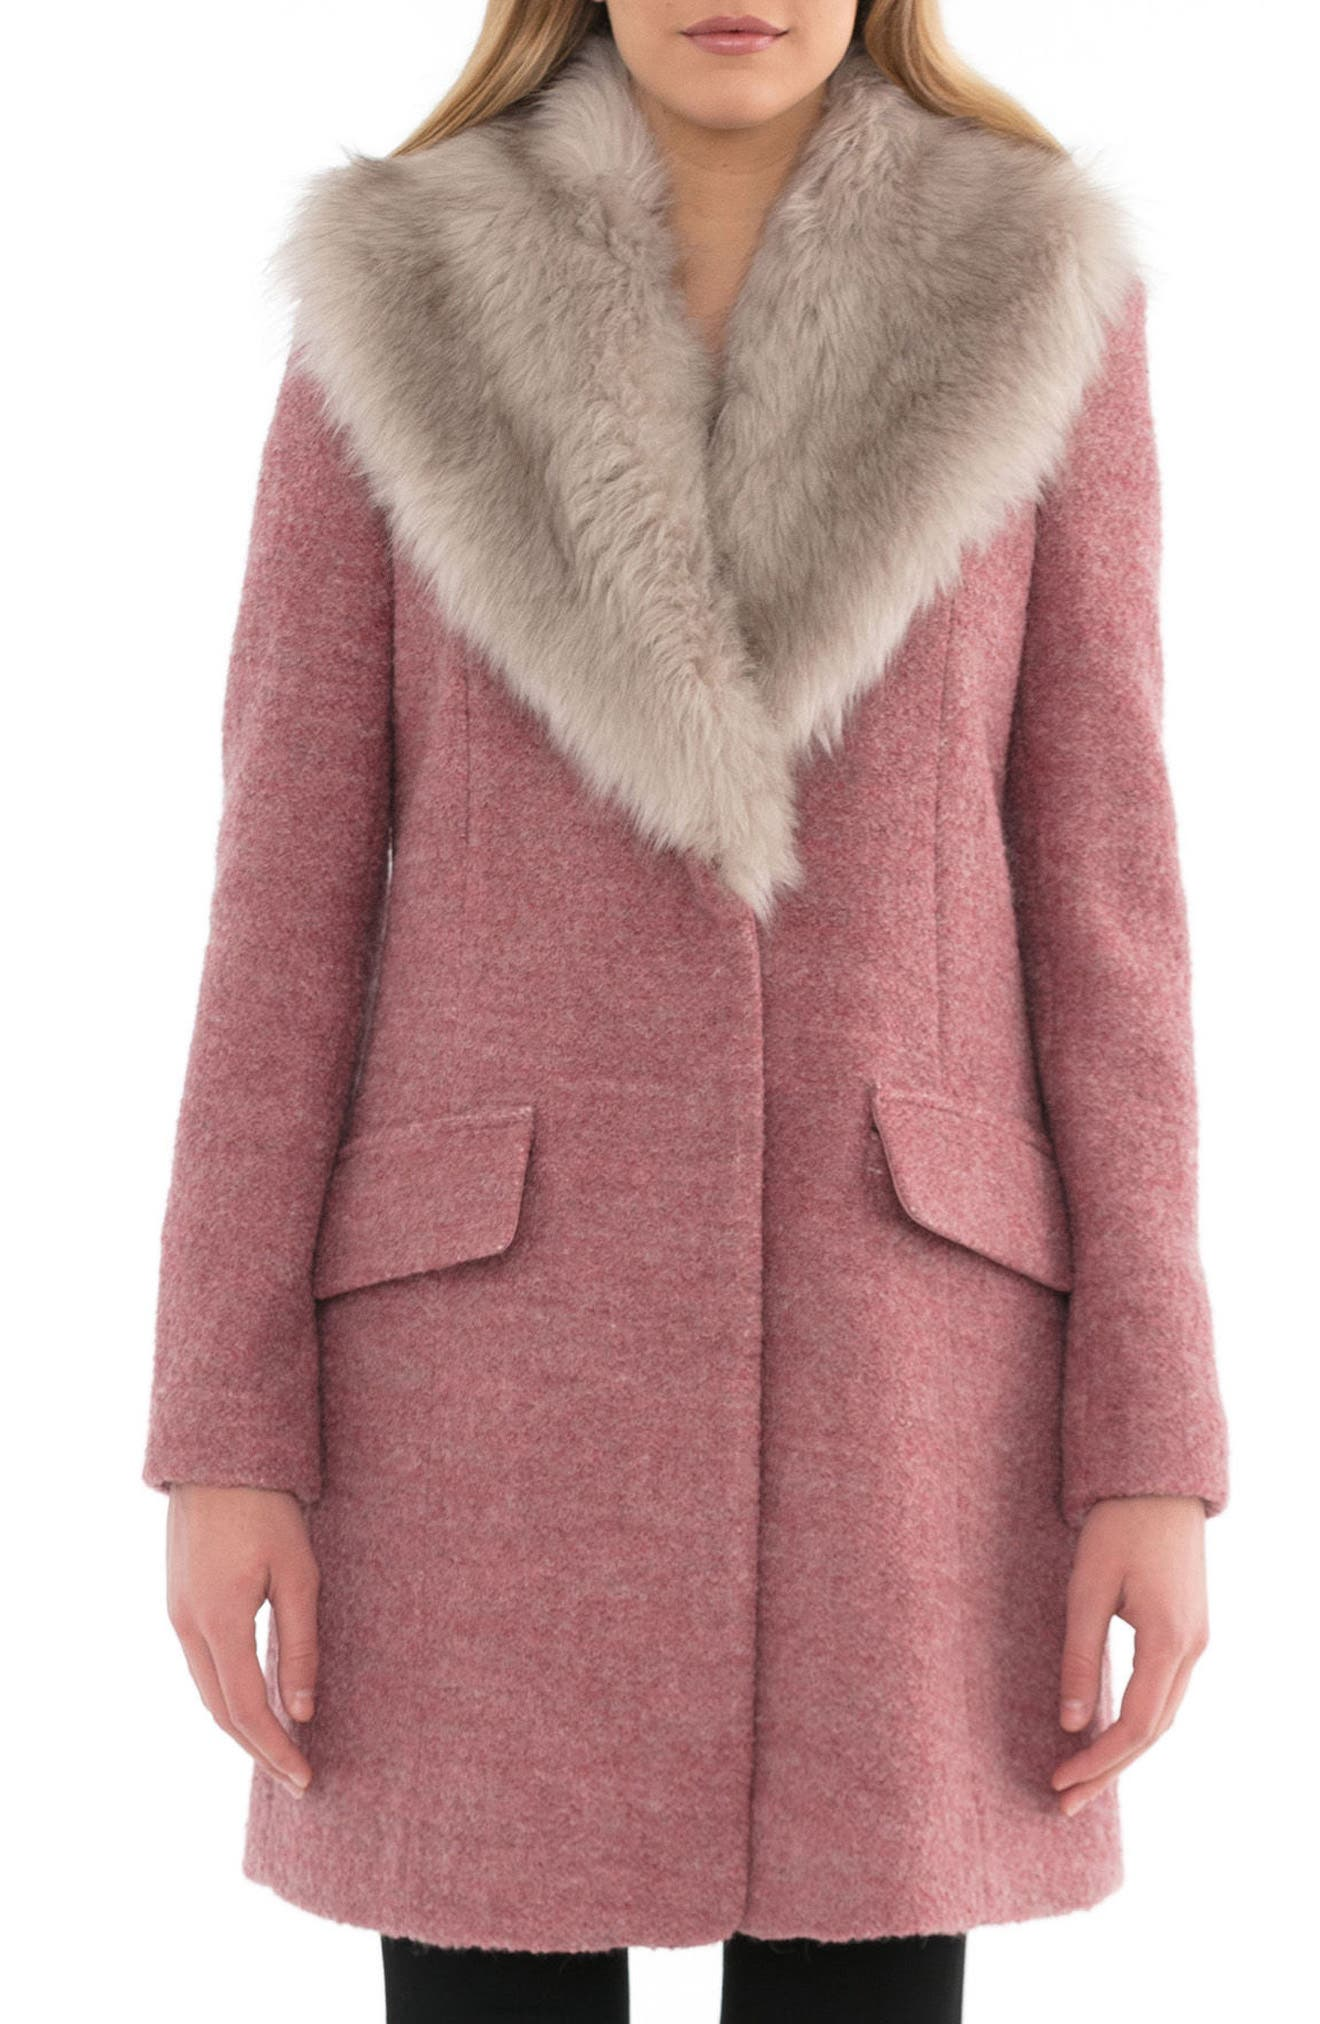 Alternate Image 1 Selected - Belle Badgley Mischka 'Holly' Faux Fur Collar Bouclé Coat